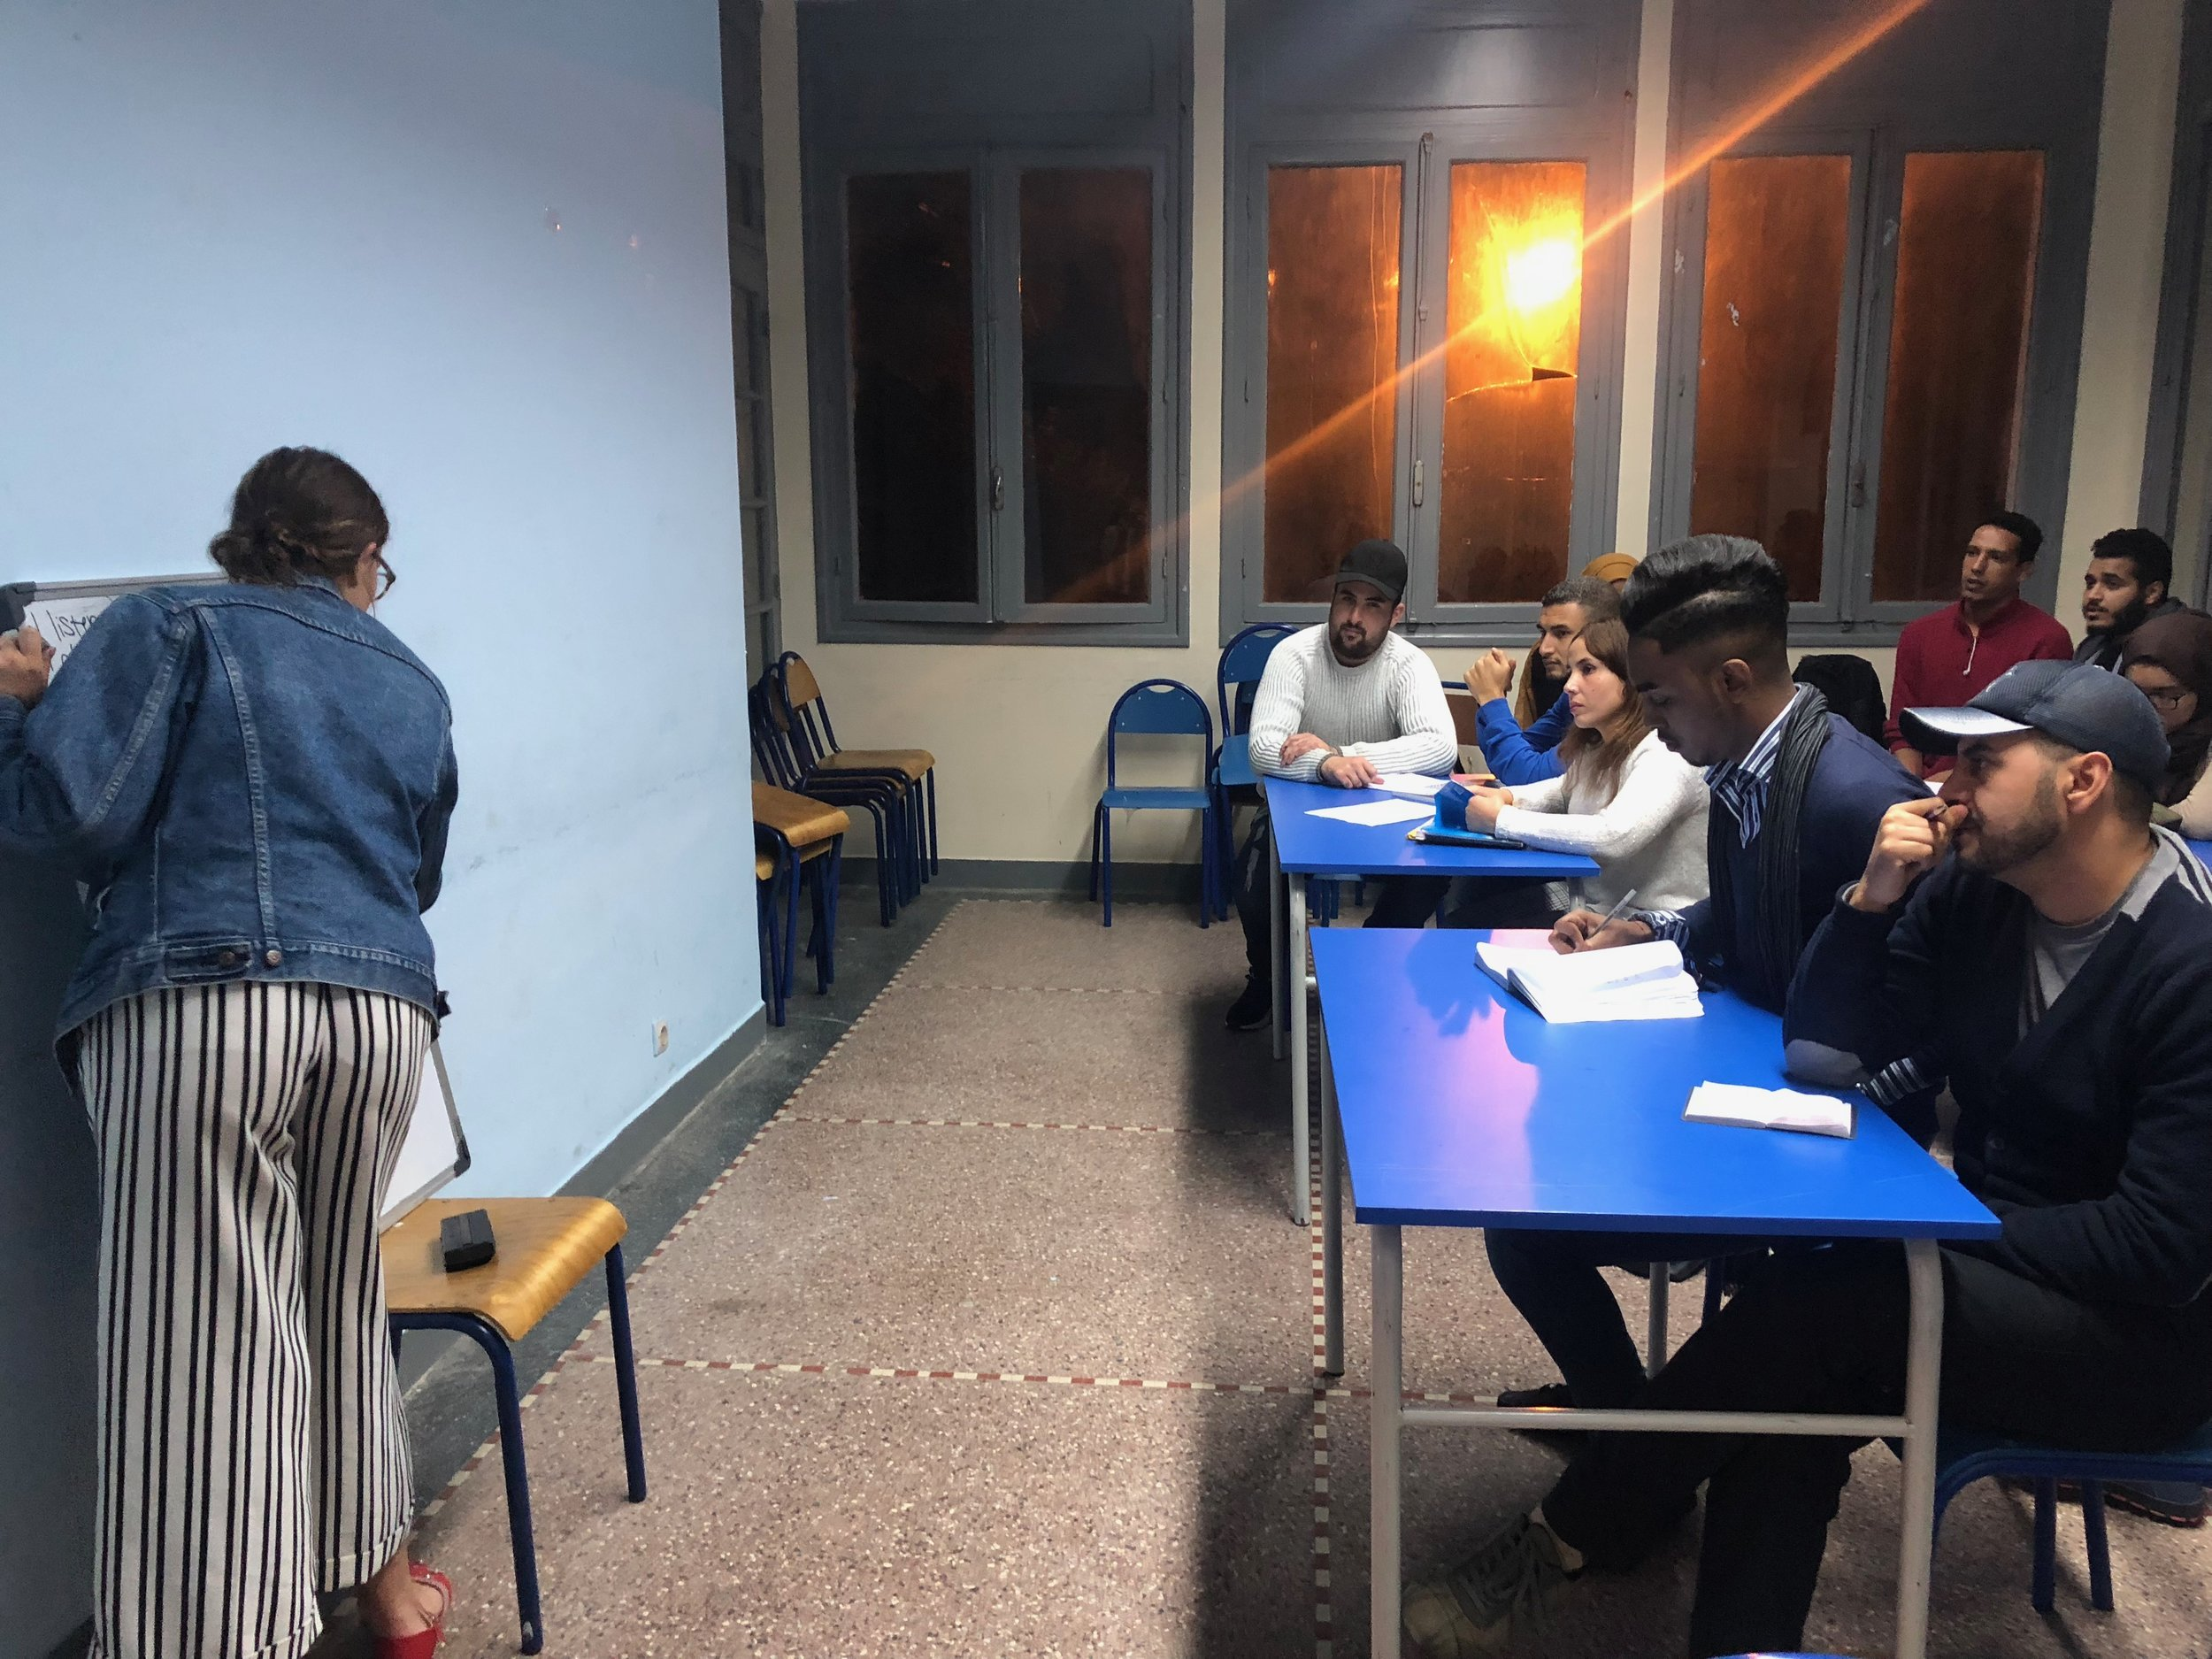 Jaycee here again leading a language activity during IEW in our Rabat office.